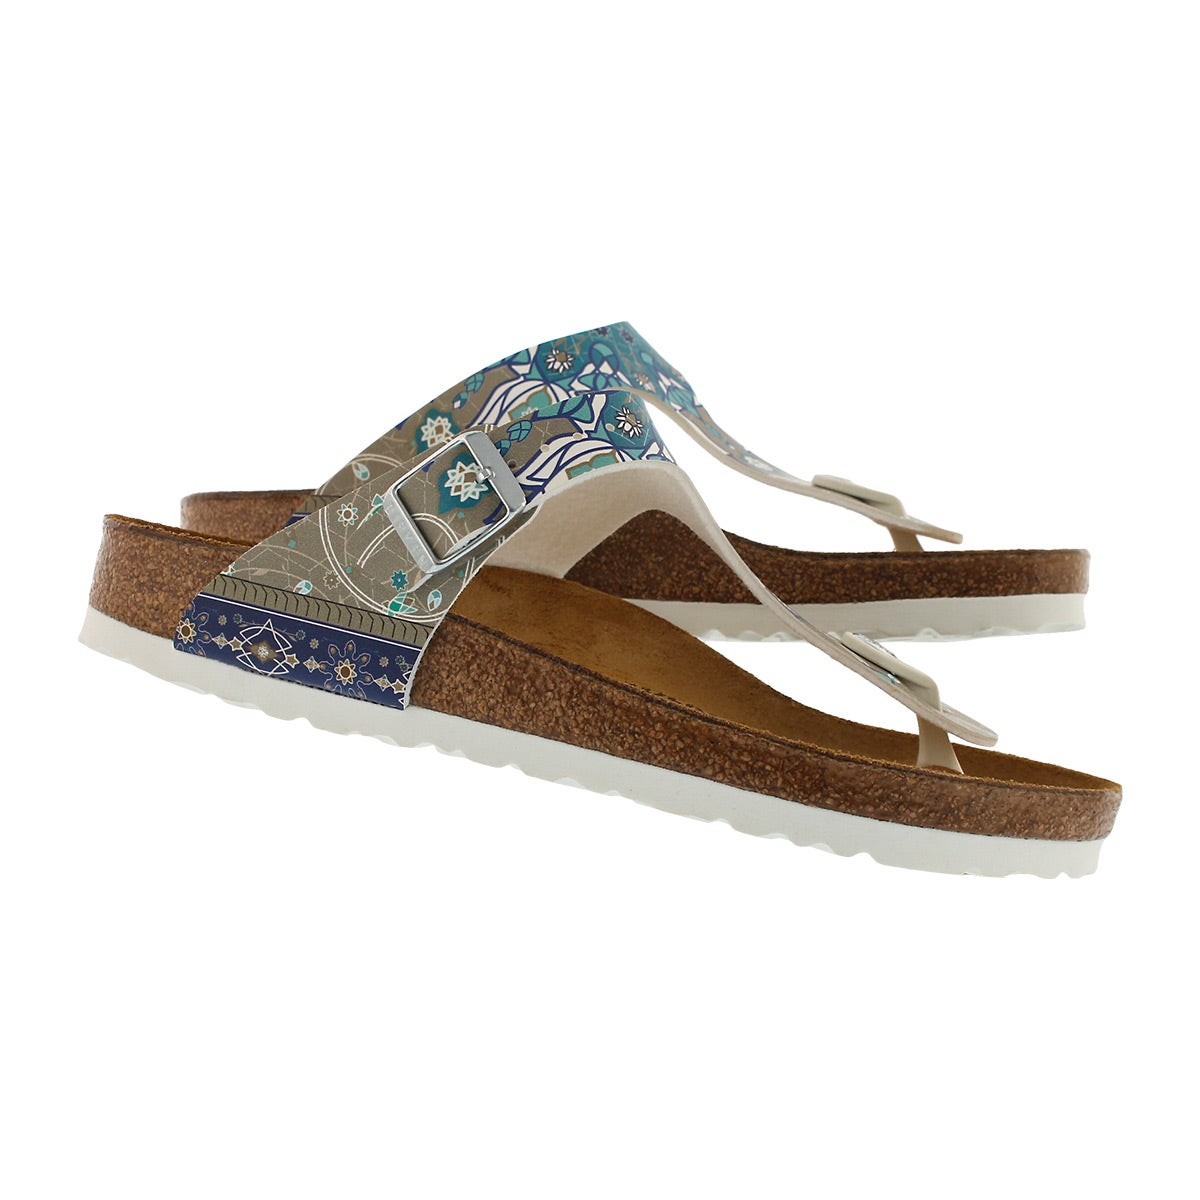 Lds Gizeh BF ancient mosaic thong sandal